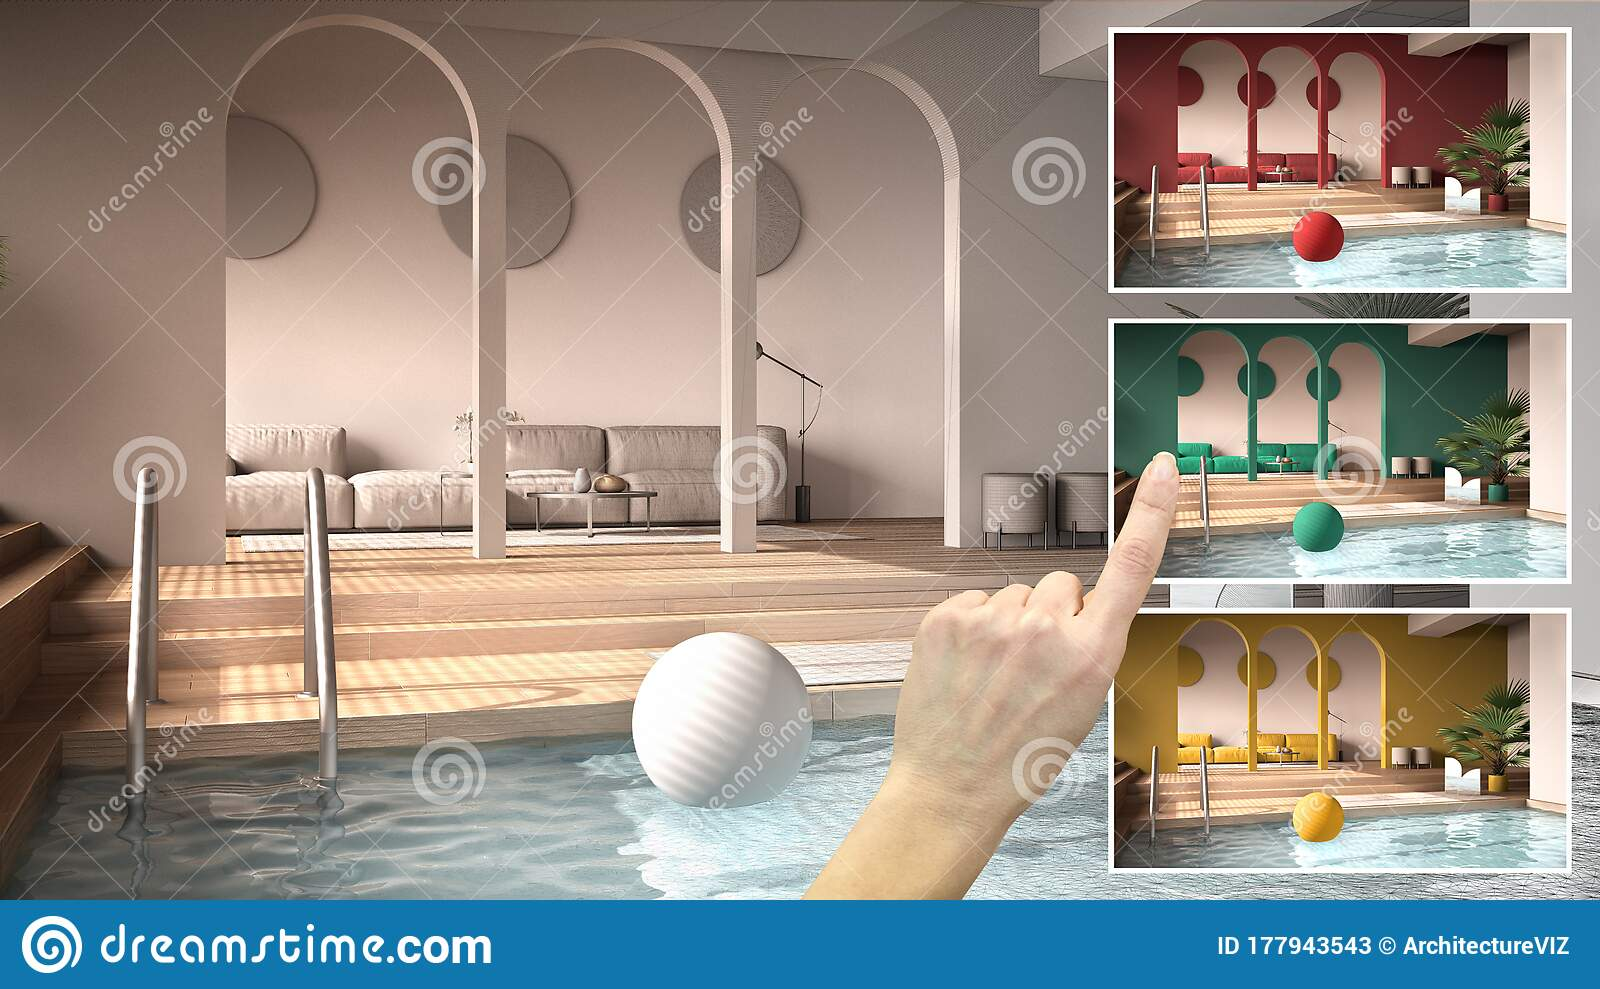 Architect Designer Concept Hand Showing Minimalist Living Room With Swimming Pool Colors In Different Options Interior Design Stock Image Image Of Material Home 177943543